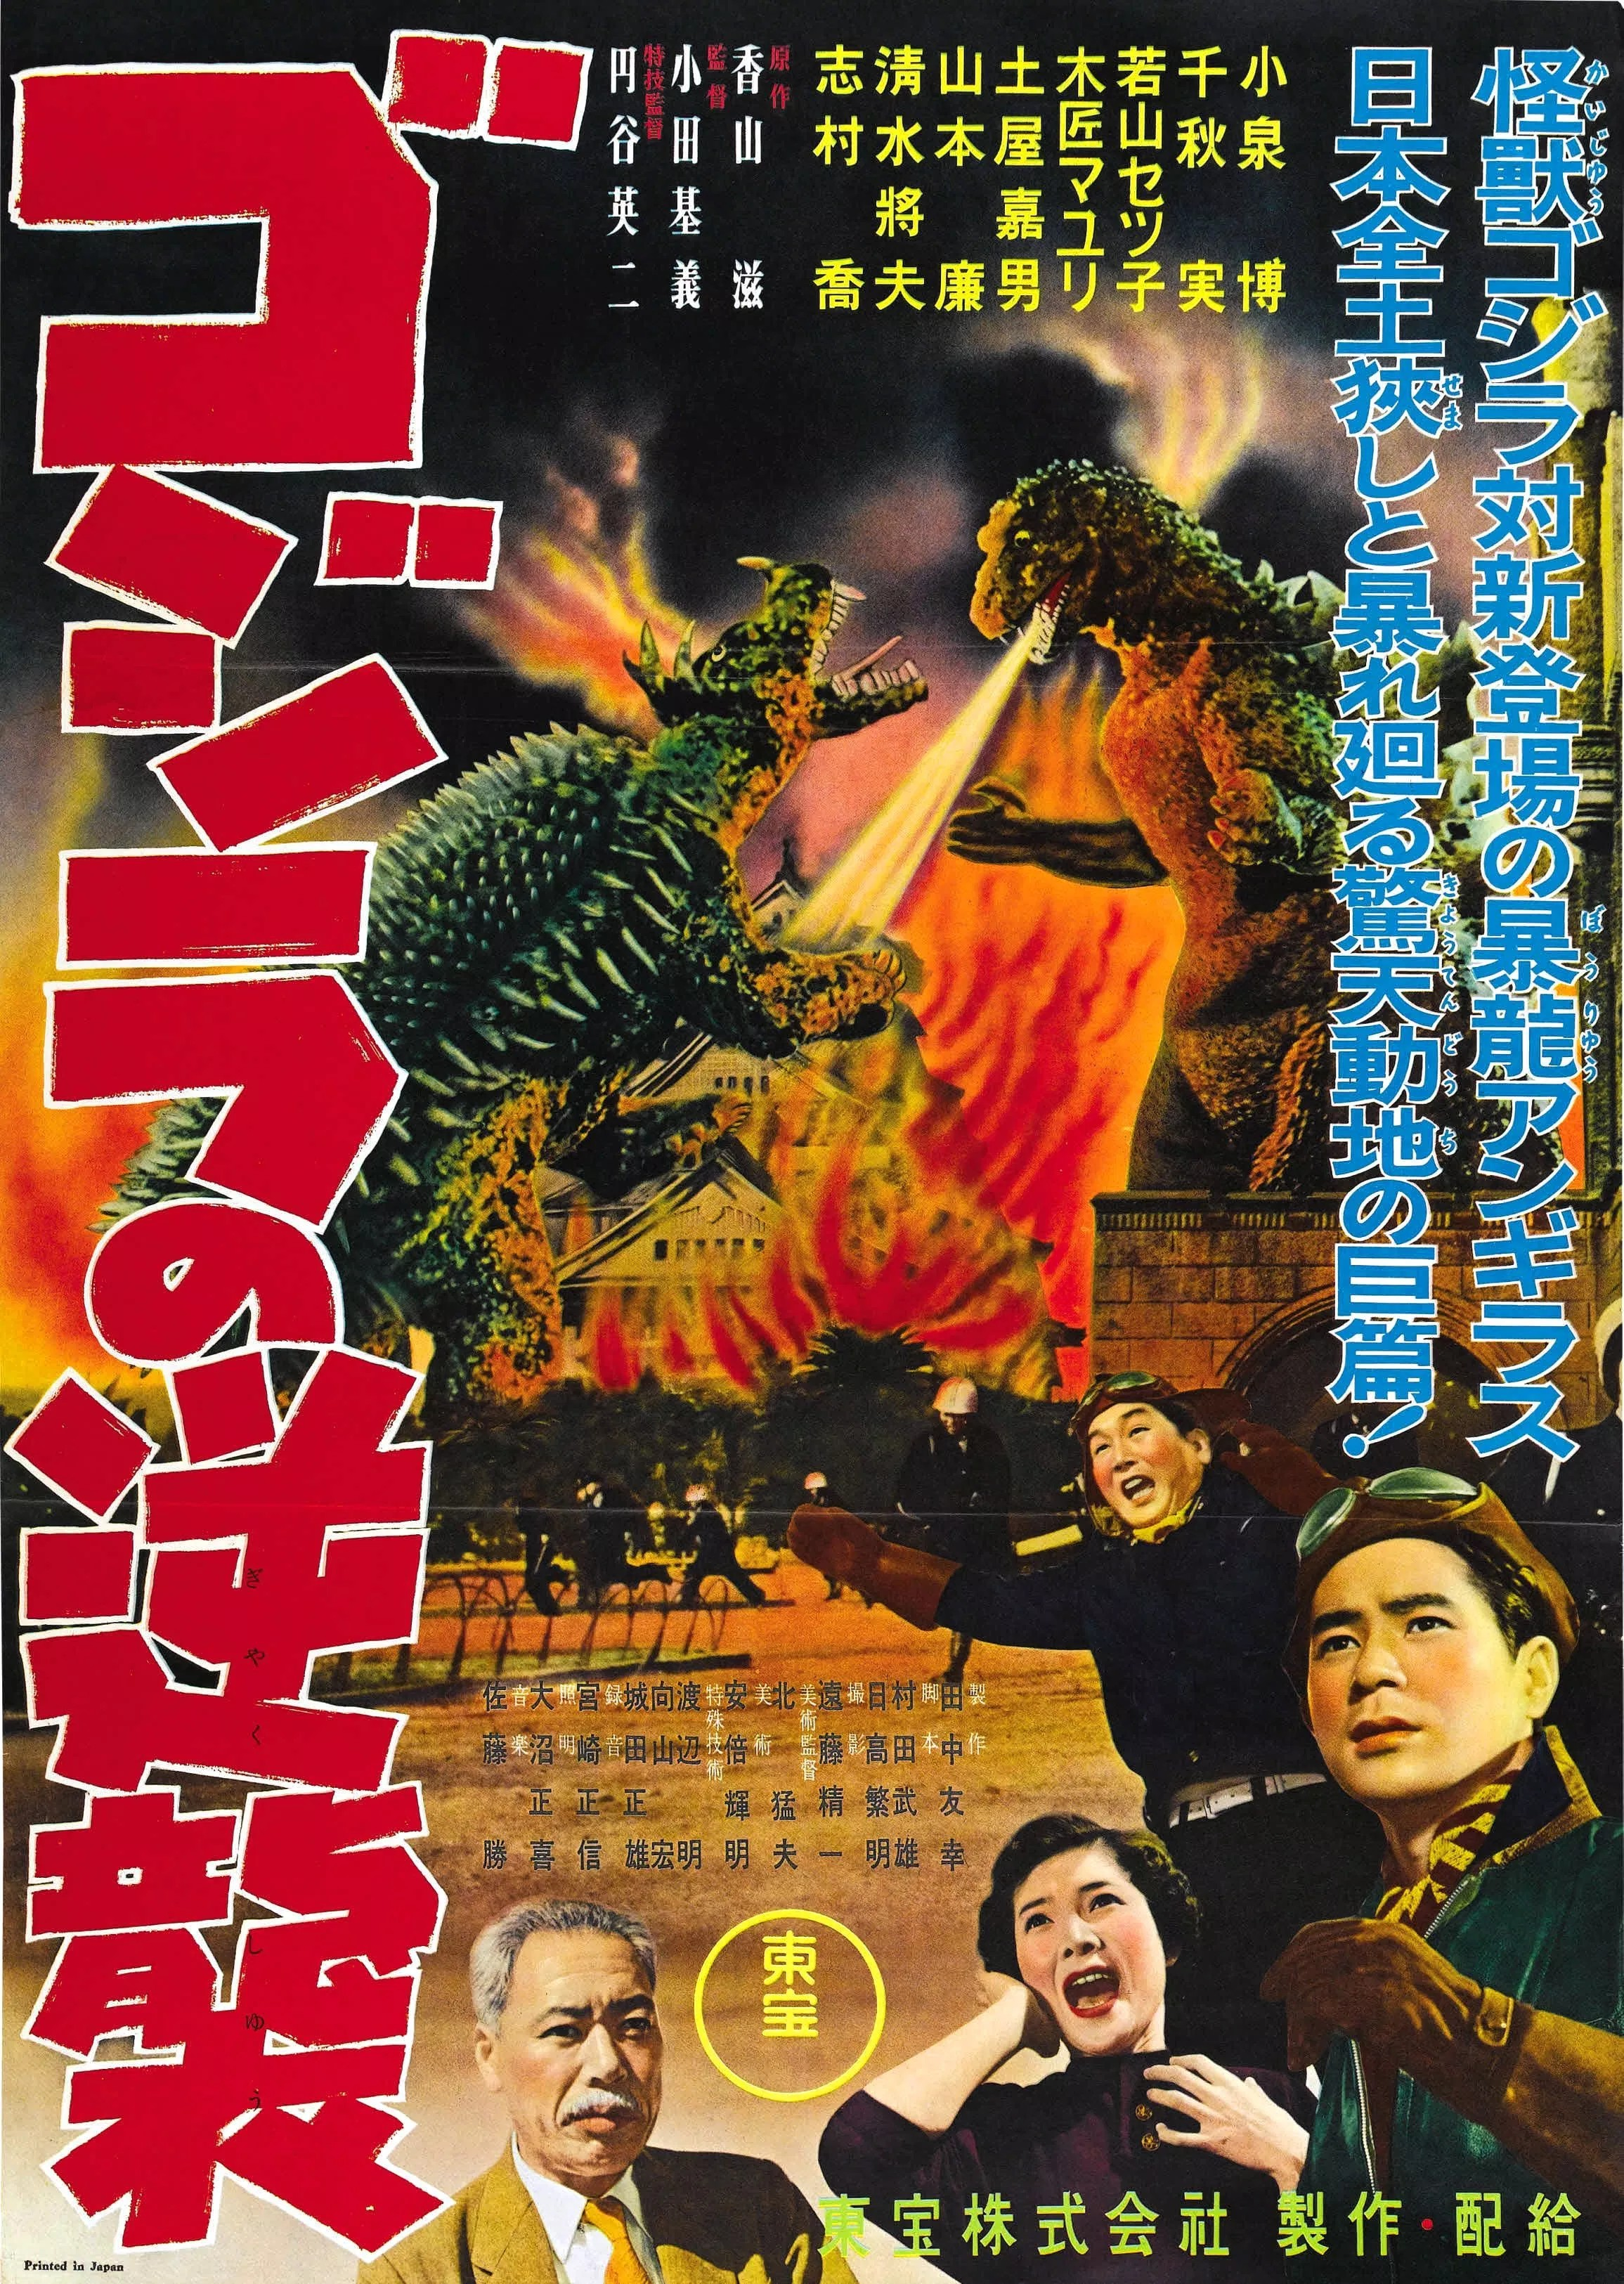 http://upload.wikimedia.org/wikipedia/commons/9/9e/Gojira_no_gyakushu_poster.jpg